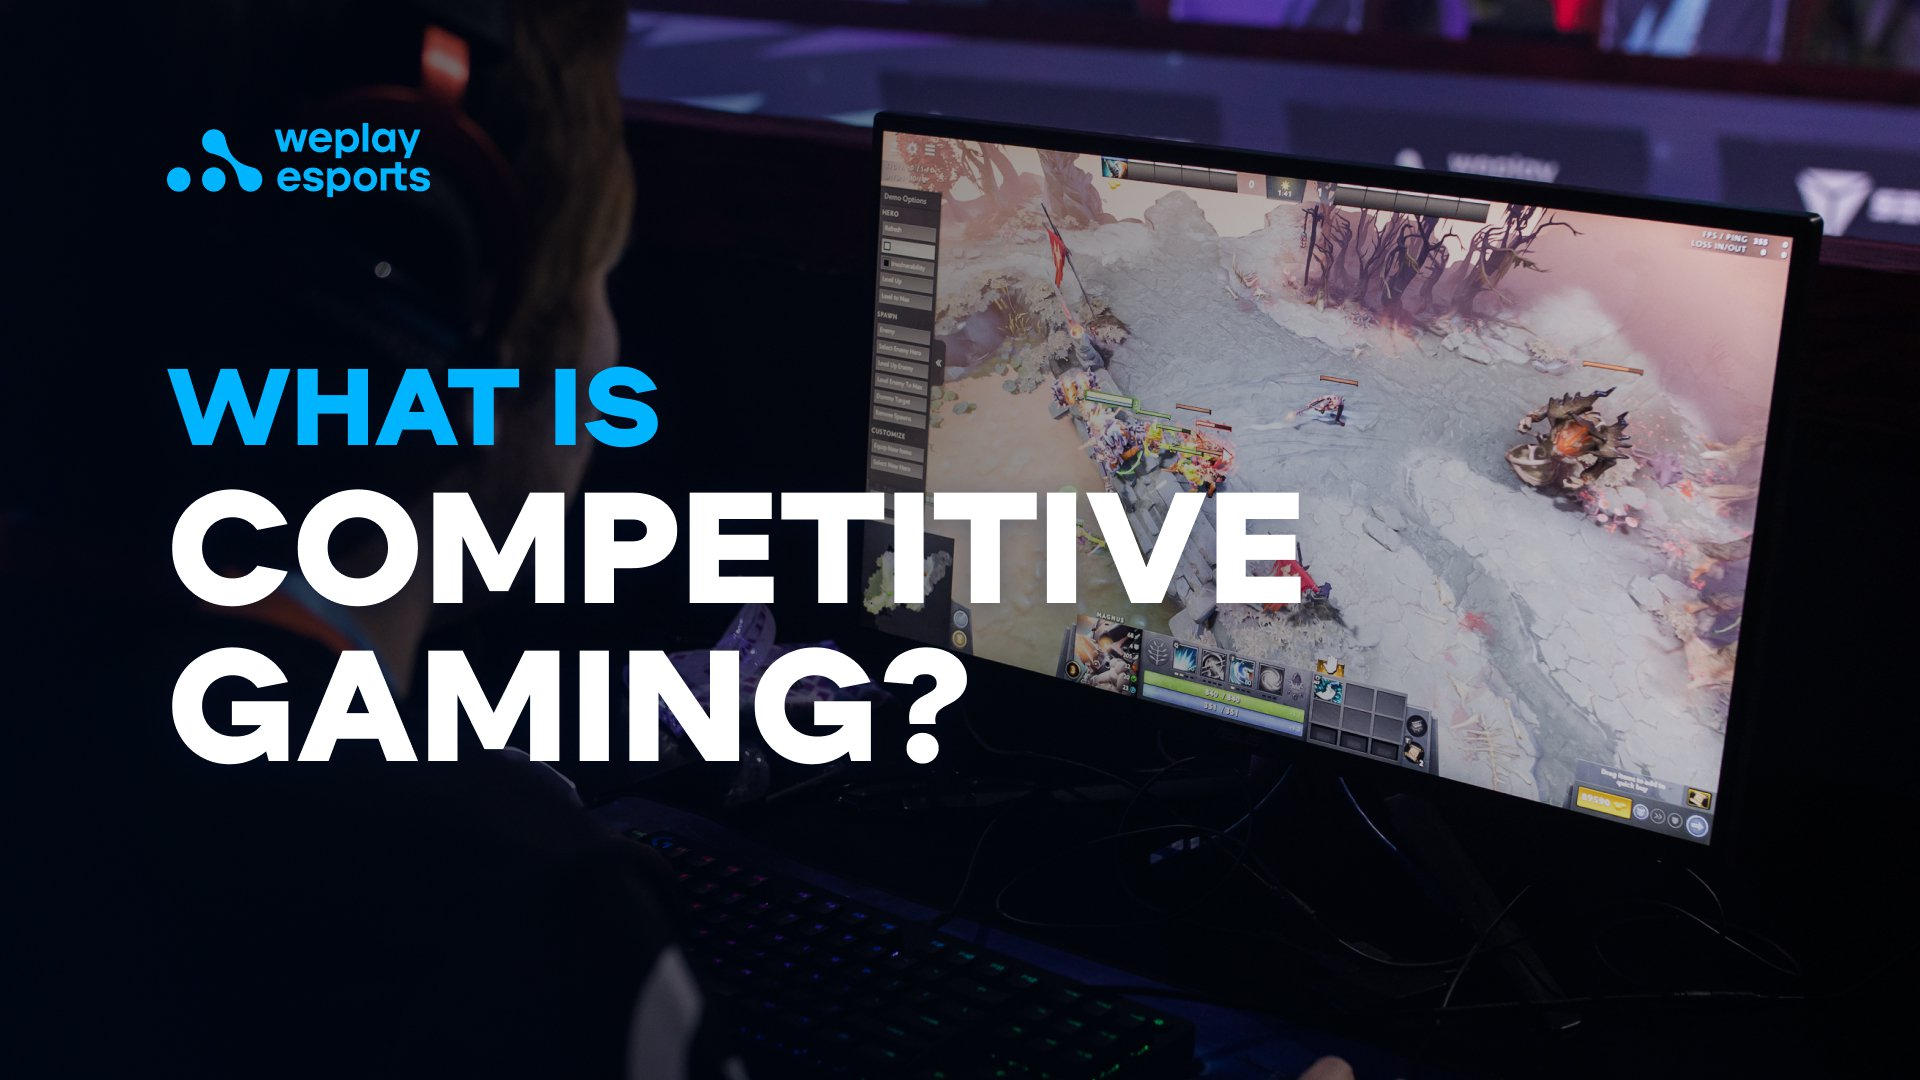 What Is Competitive Gaming?